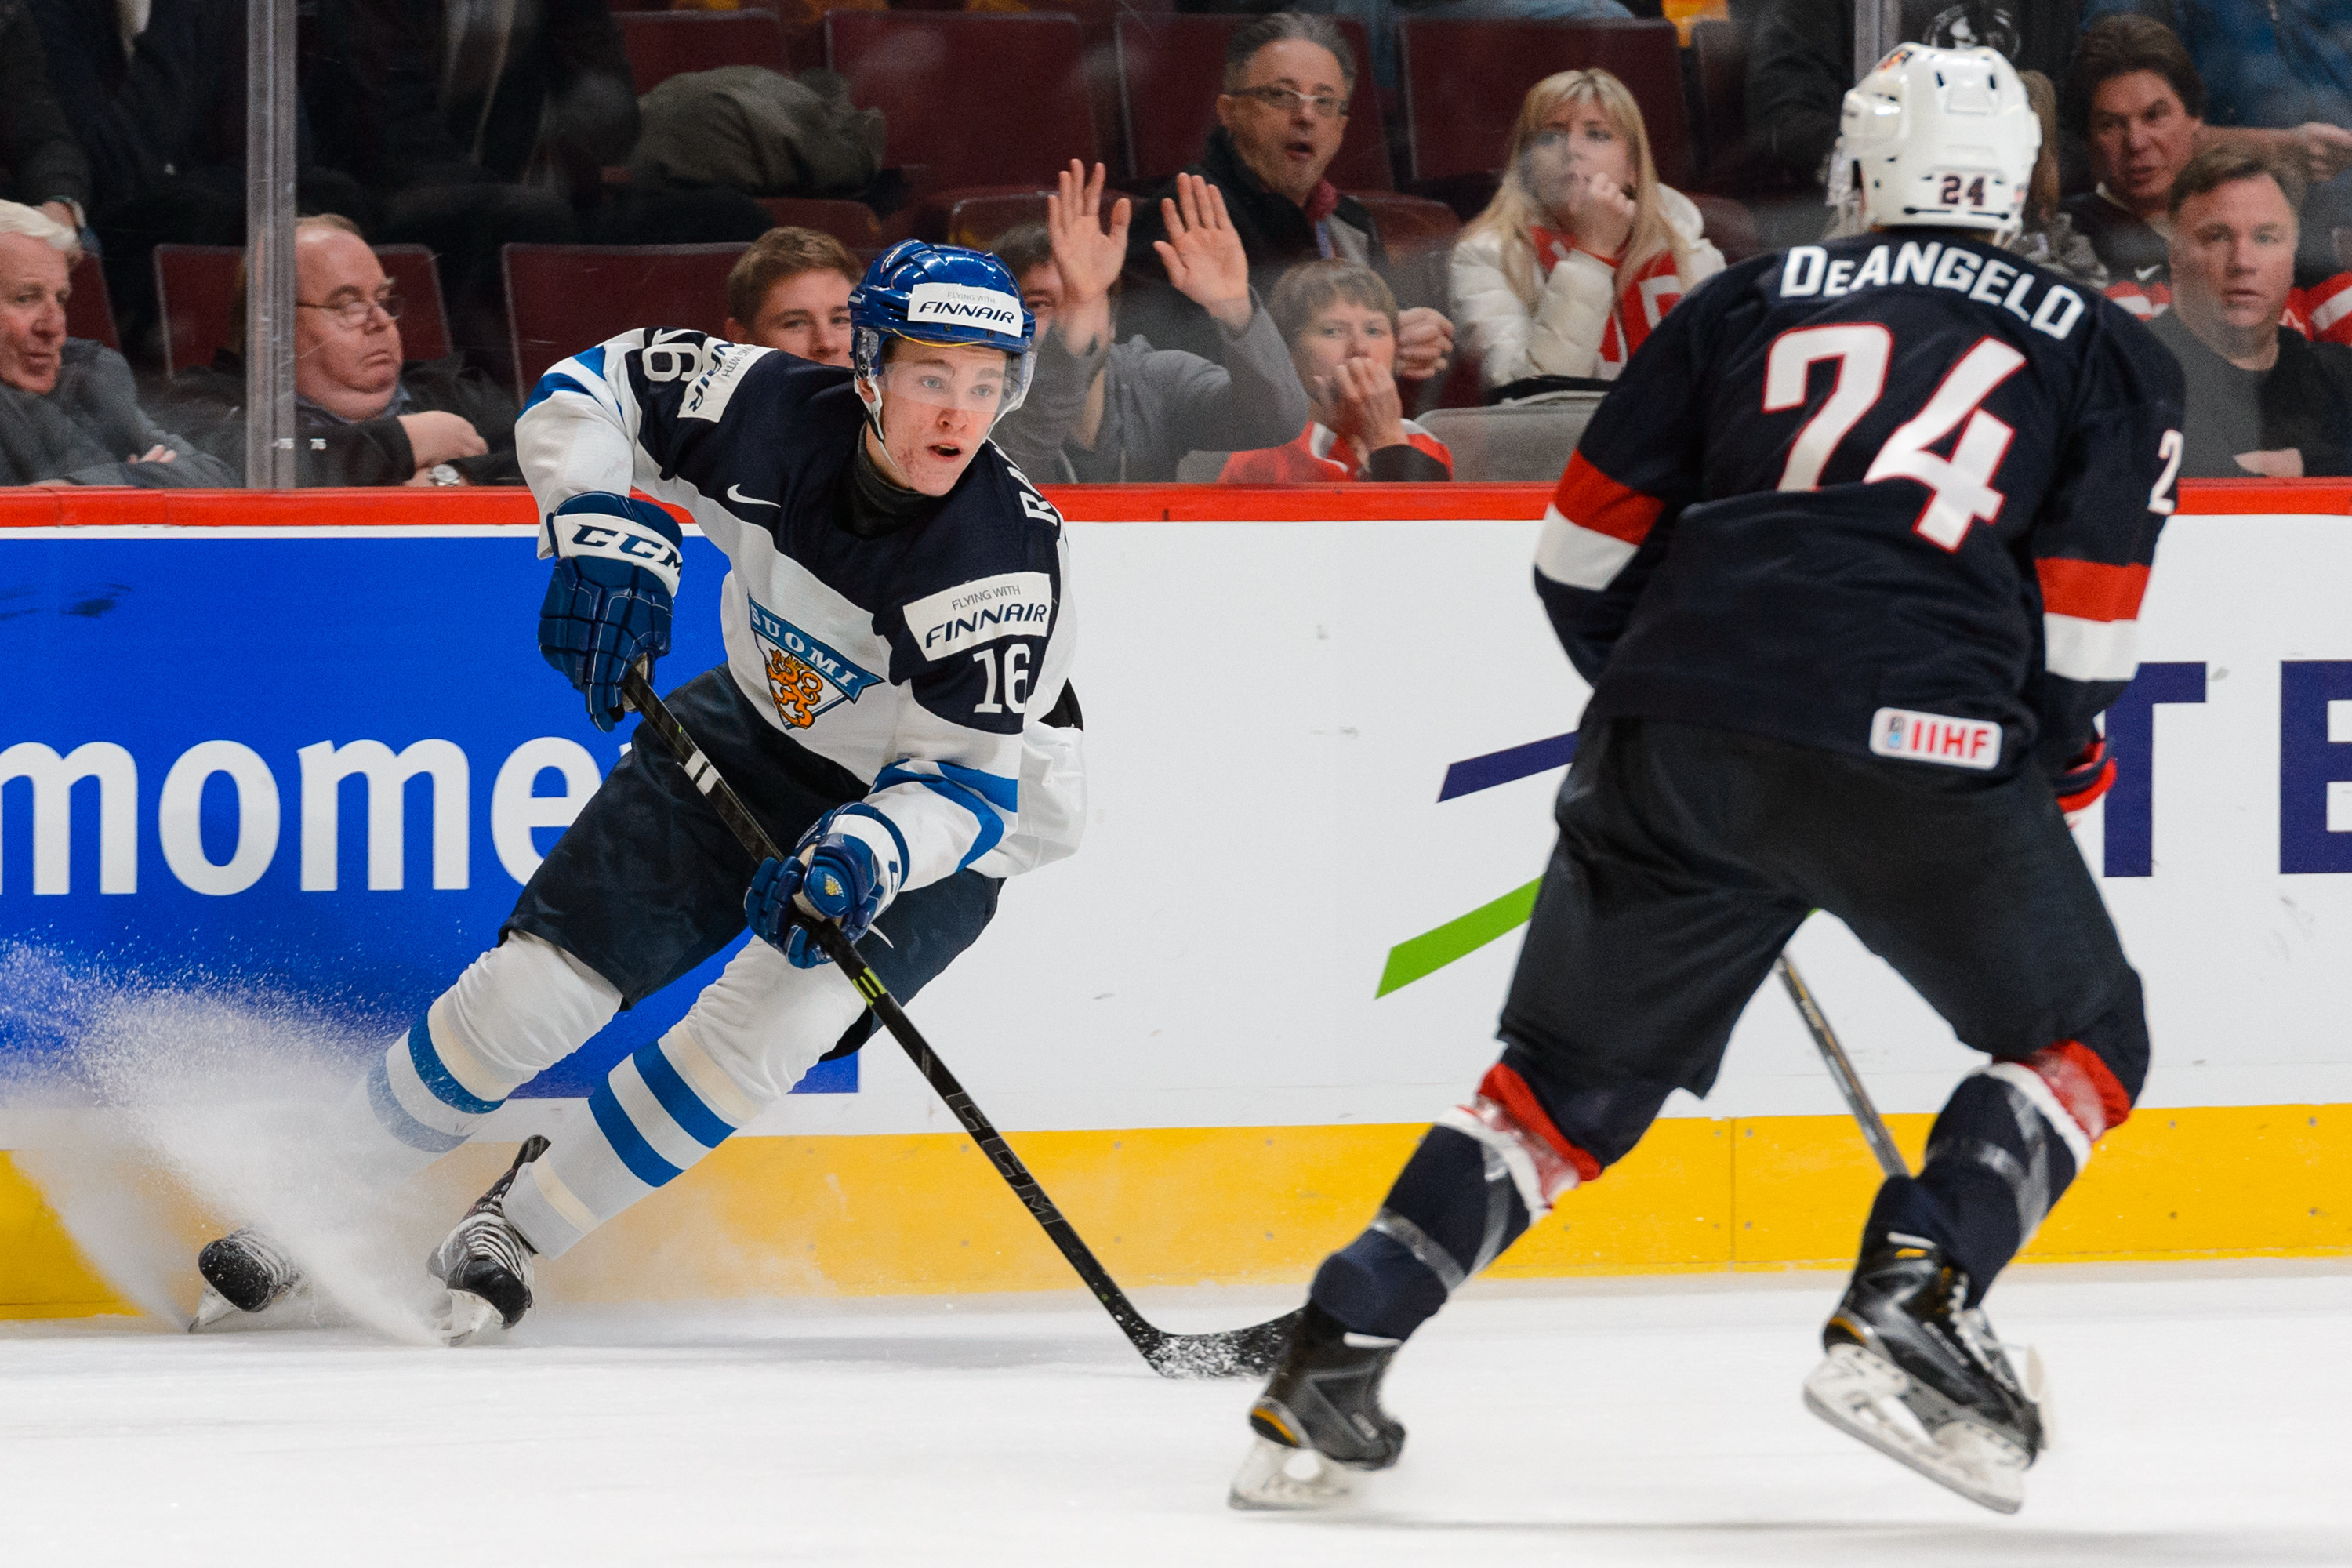 Mikko Rantanen: made moves against the American team at the WJCs, will likely be picked by an American team later this month.